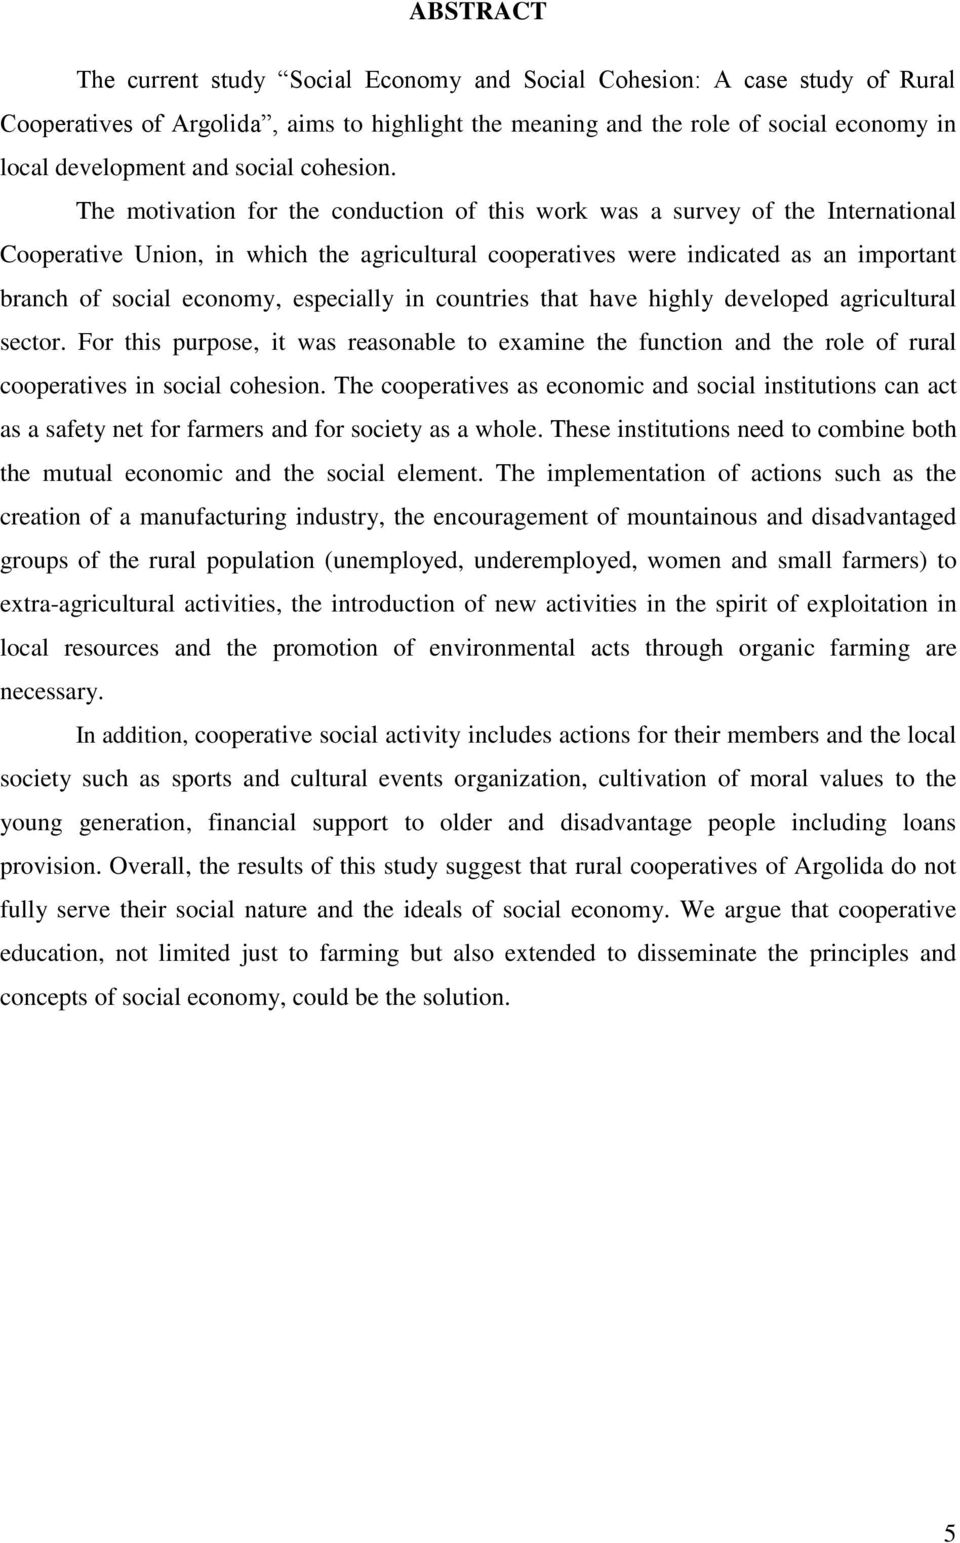 The motivation for the conduction of this work was a survey of the International Cooperative Union, in which the agricultural cooperatives were indicated as an important branch of social economy,